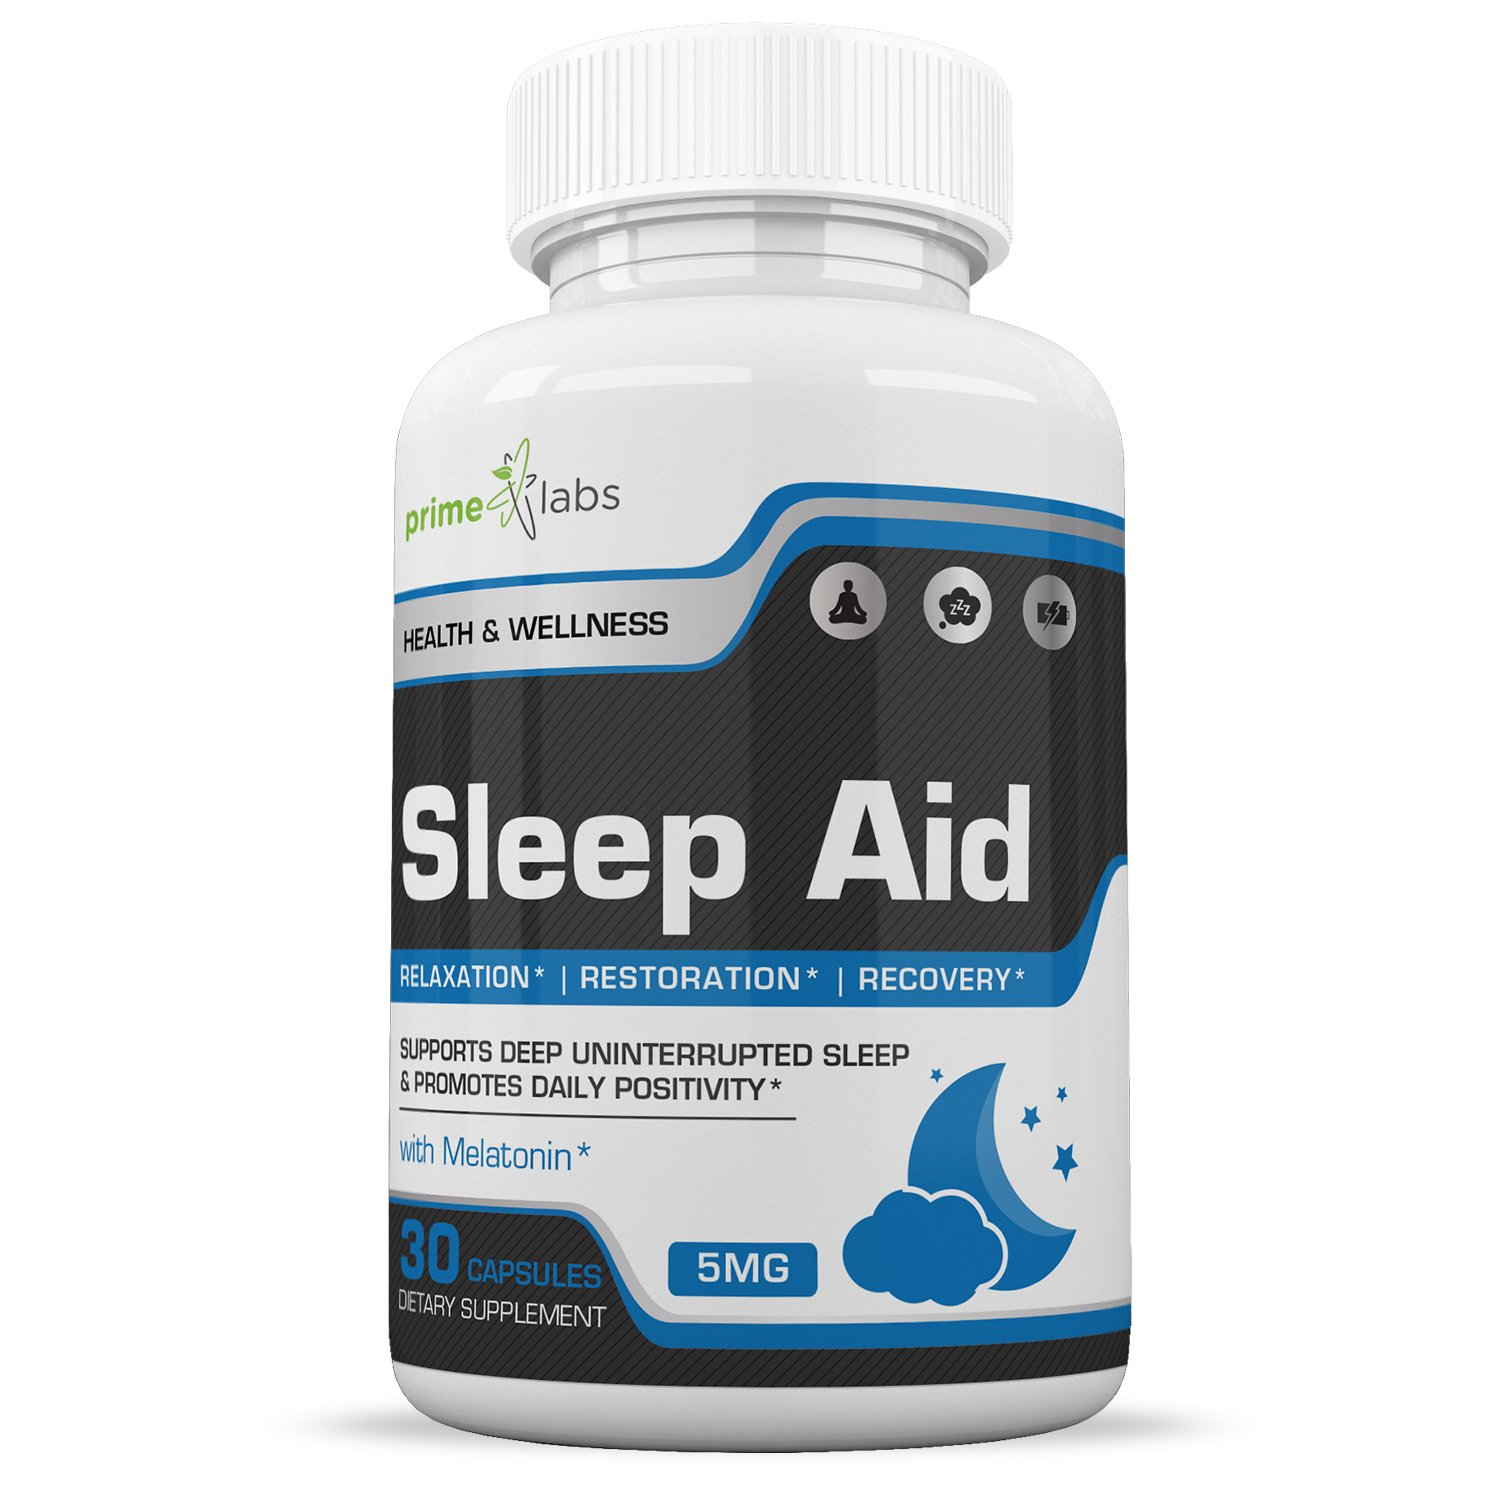 Natural Sleep Aid Supplement - Fast Acting Melatonin 5mg for Better Sleep Support, Relaxation, Wake Refreshed & Energized- 30 Capsules by Prime Labs